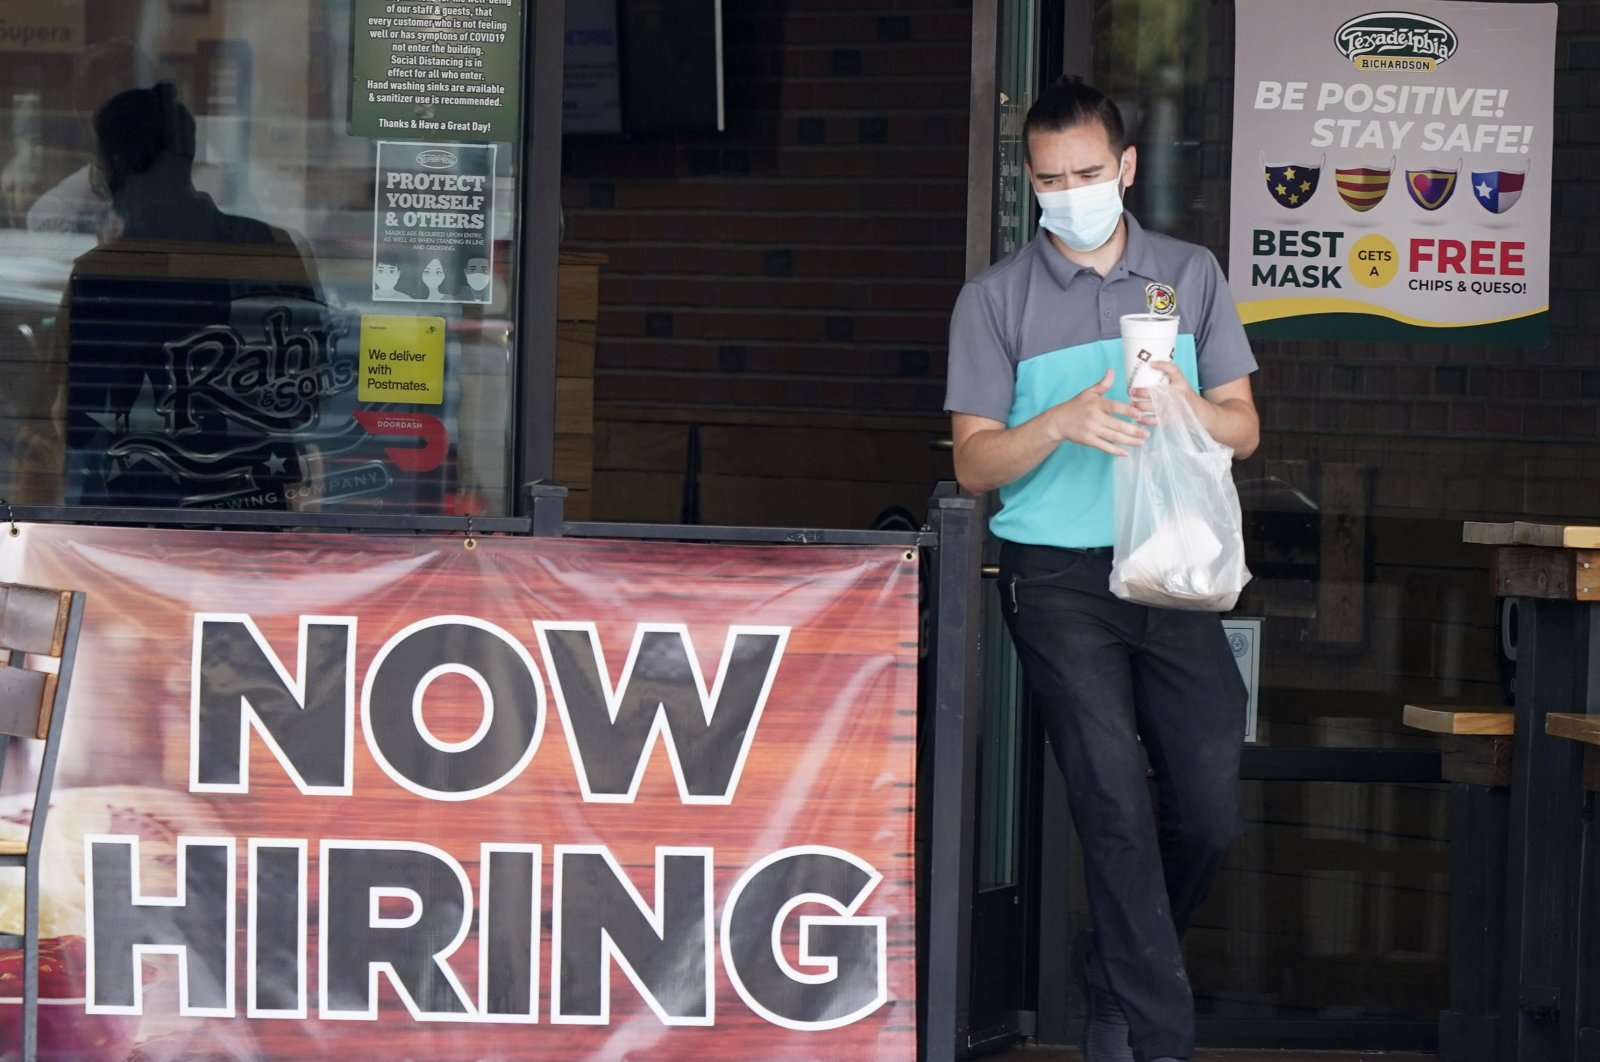 A customer wears a face mask as they carry their order past a now hiring sign at an eatery in Richardson, Texas, U.S., Sept. 2, 2020. (AP Photo)